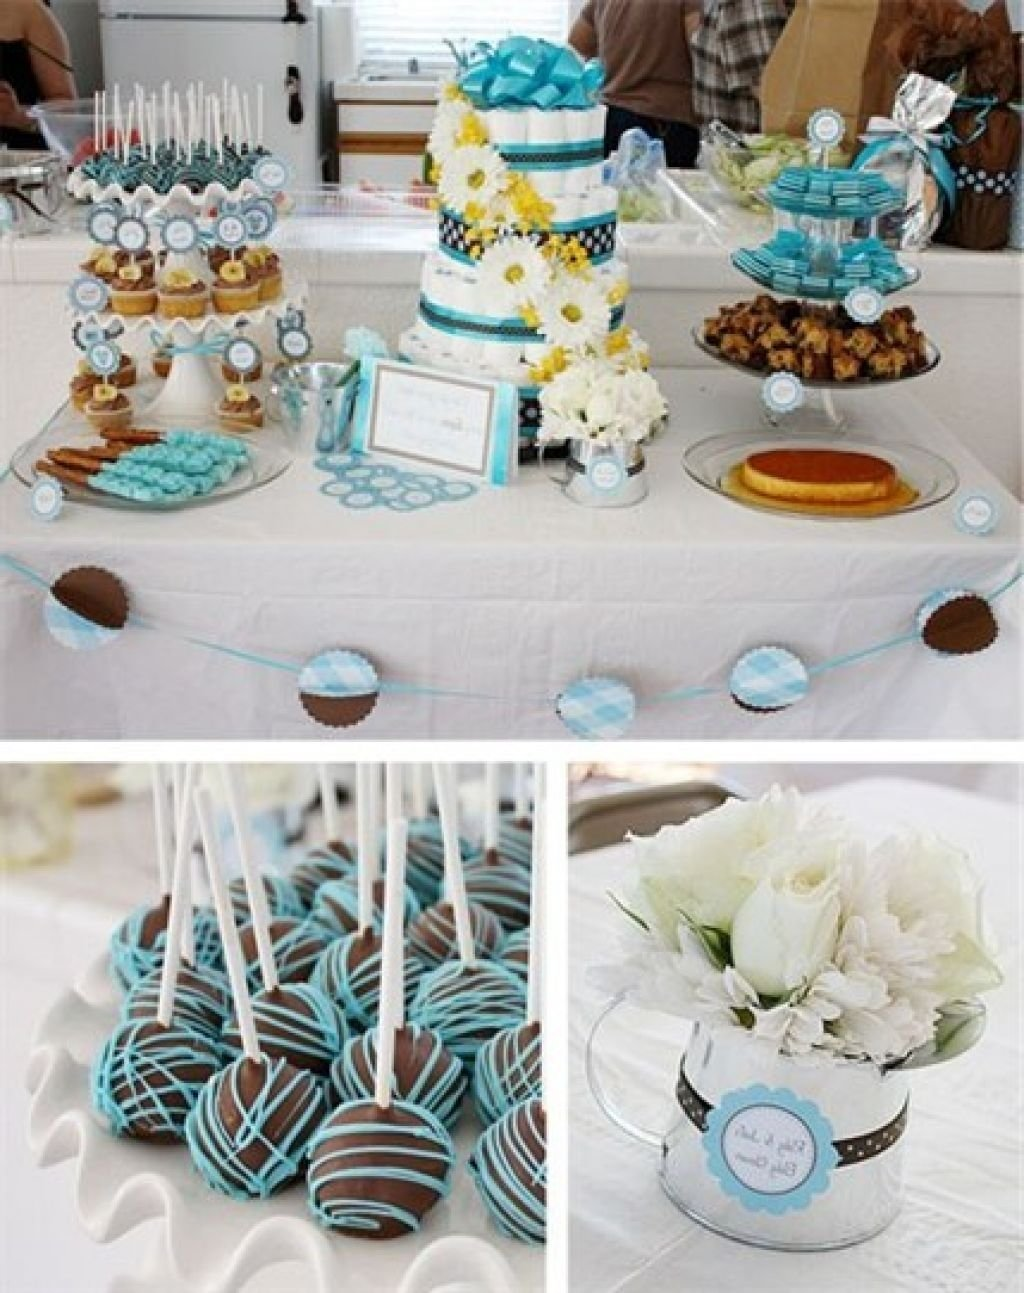 10 Lovely Ideas For Baby Shower Boy homey ideas baby shower snacks boy home design wedding 2020